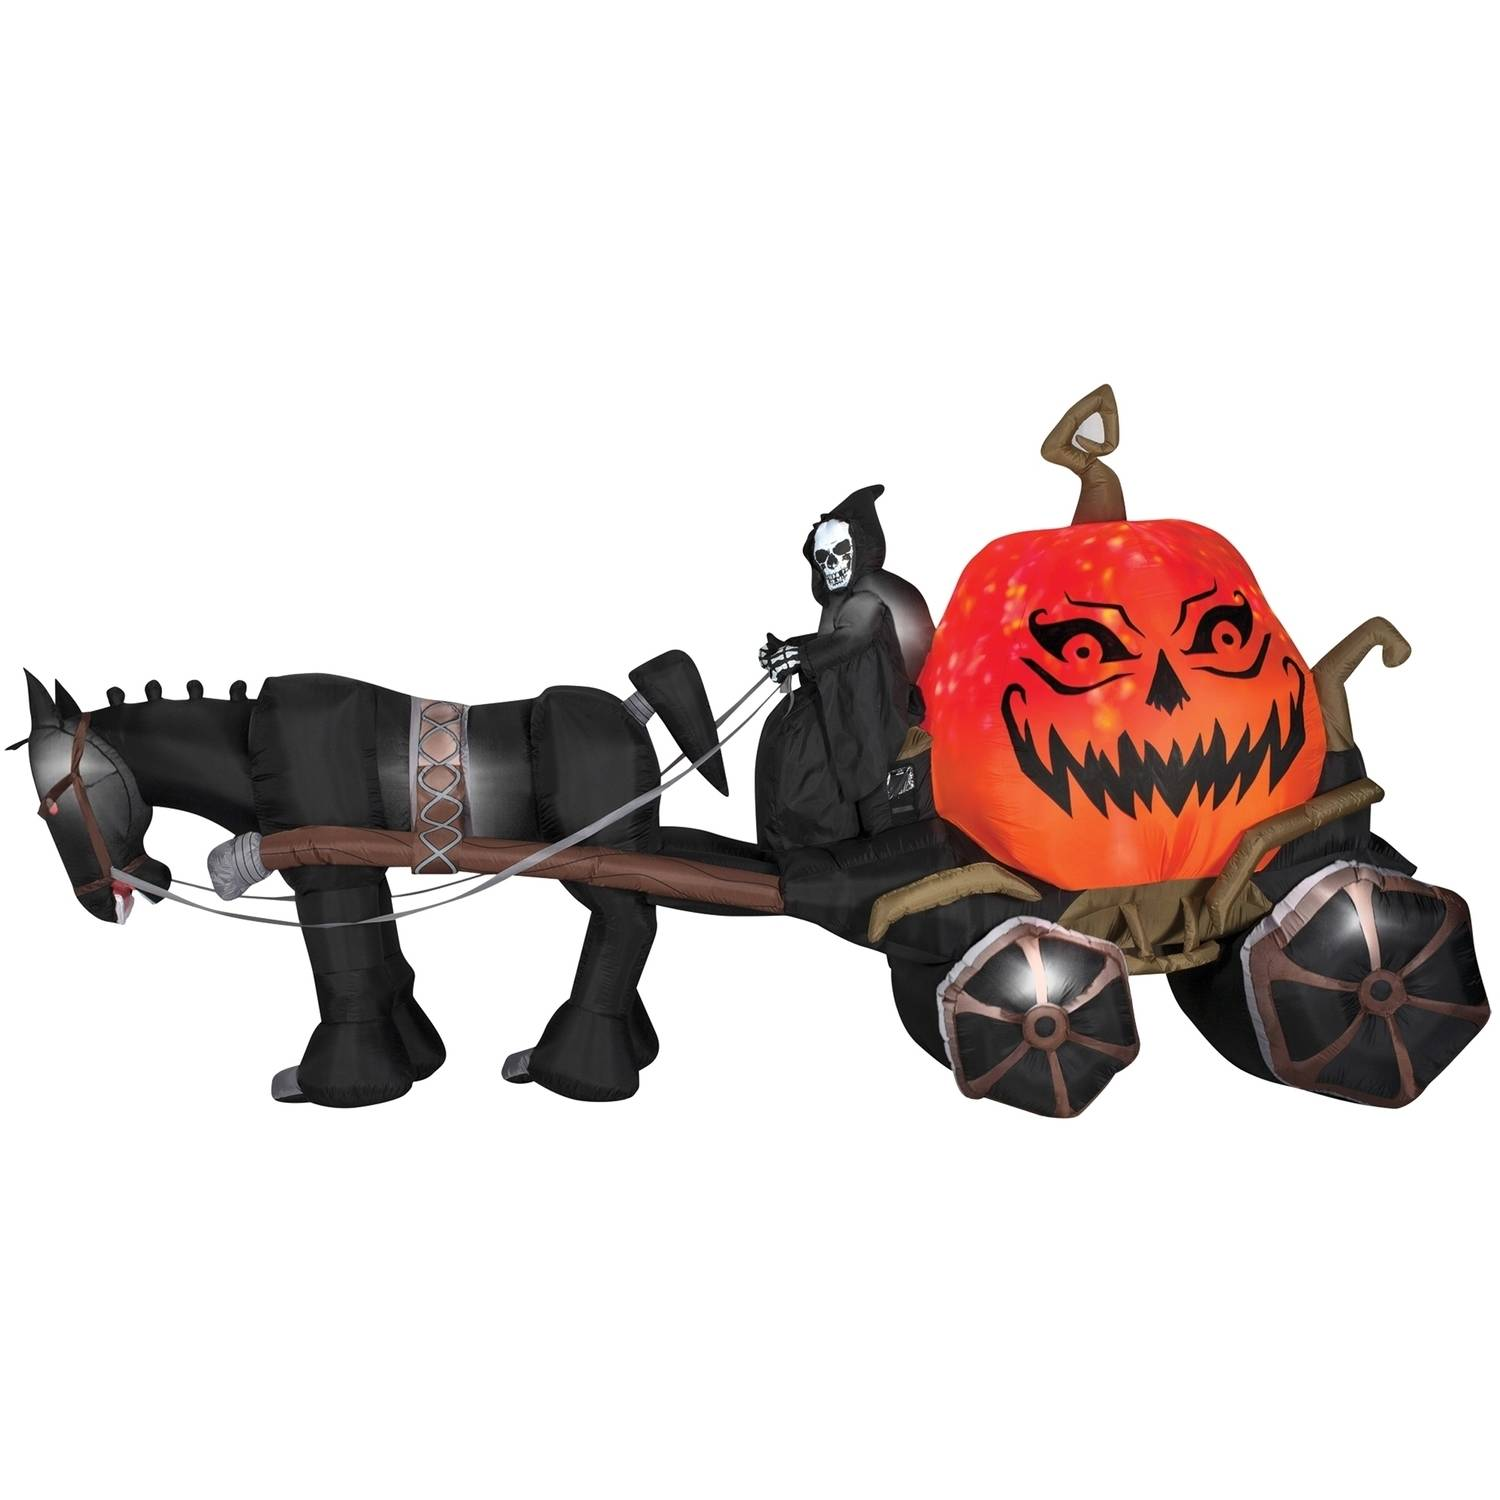 Reaper Projection Airblown Halloween Decoration